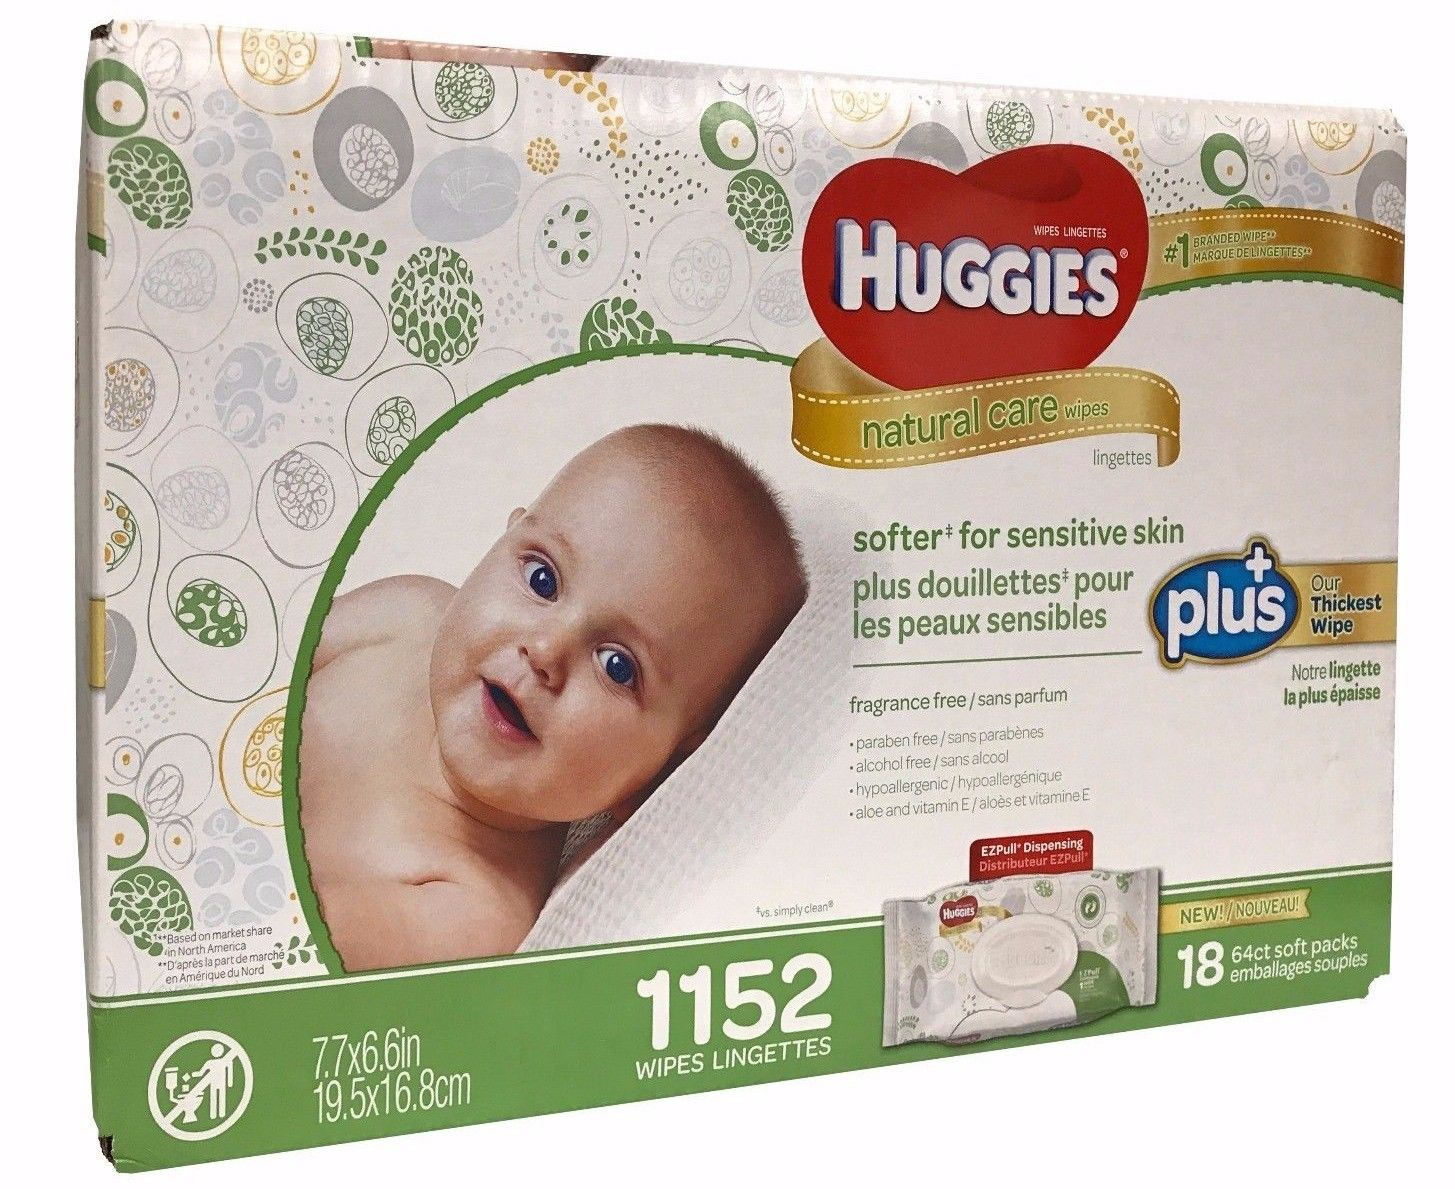 Huggies Natural Care Plus Baby Wipes 1152 Thickest Wipes 7.7 x 6.6 in